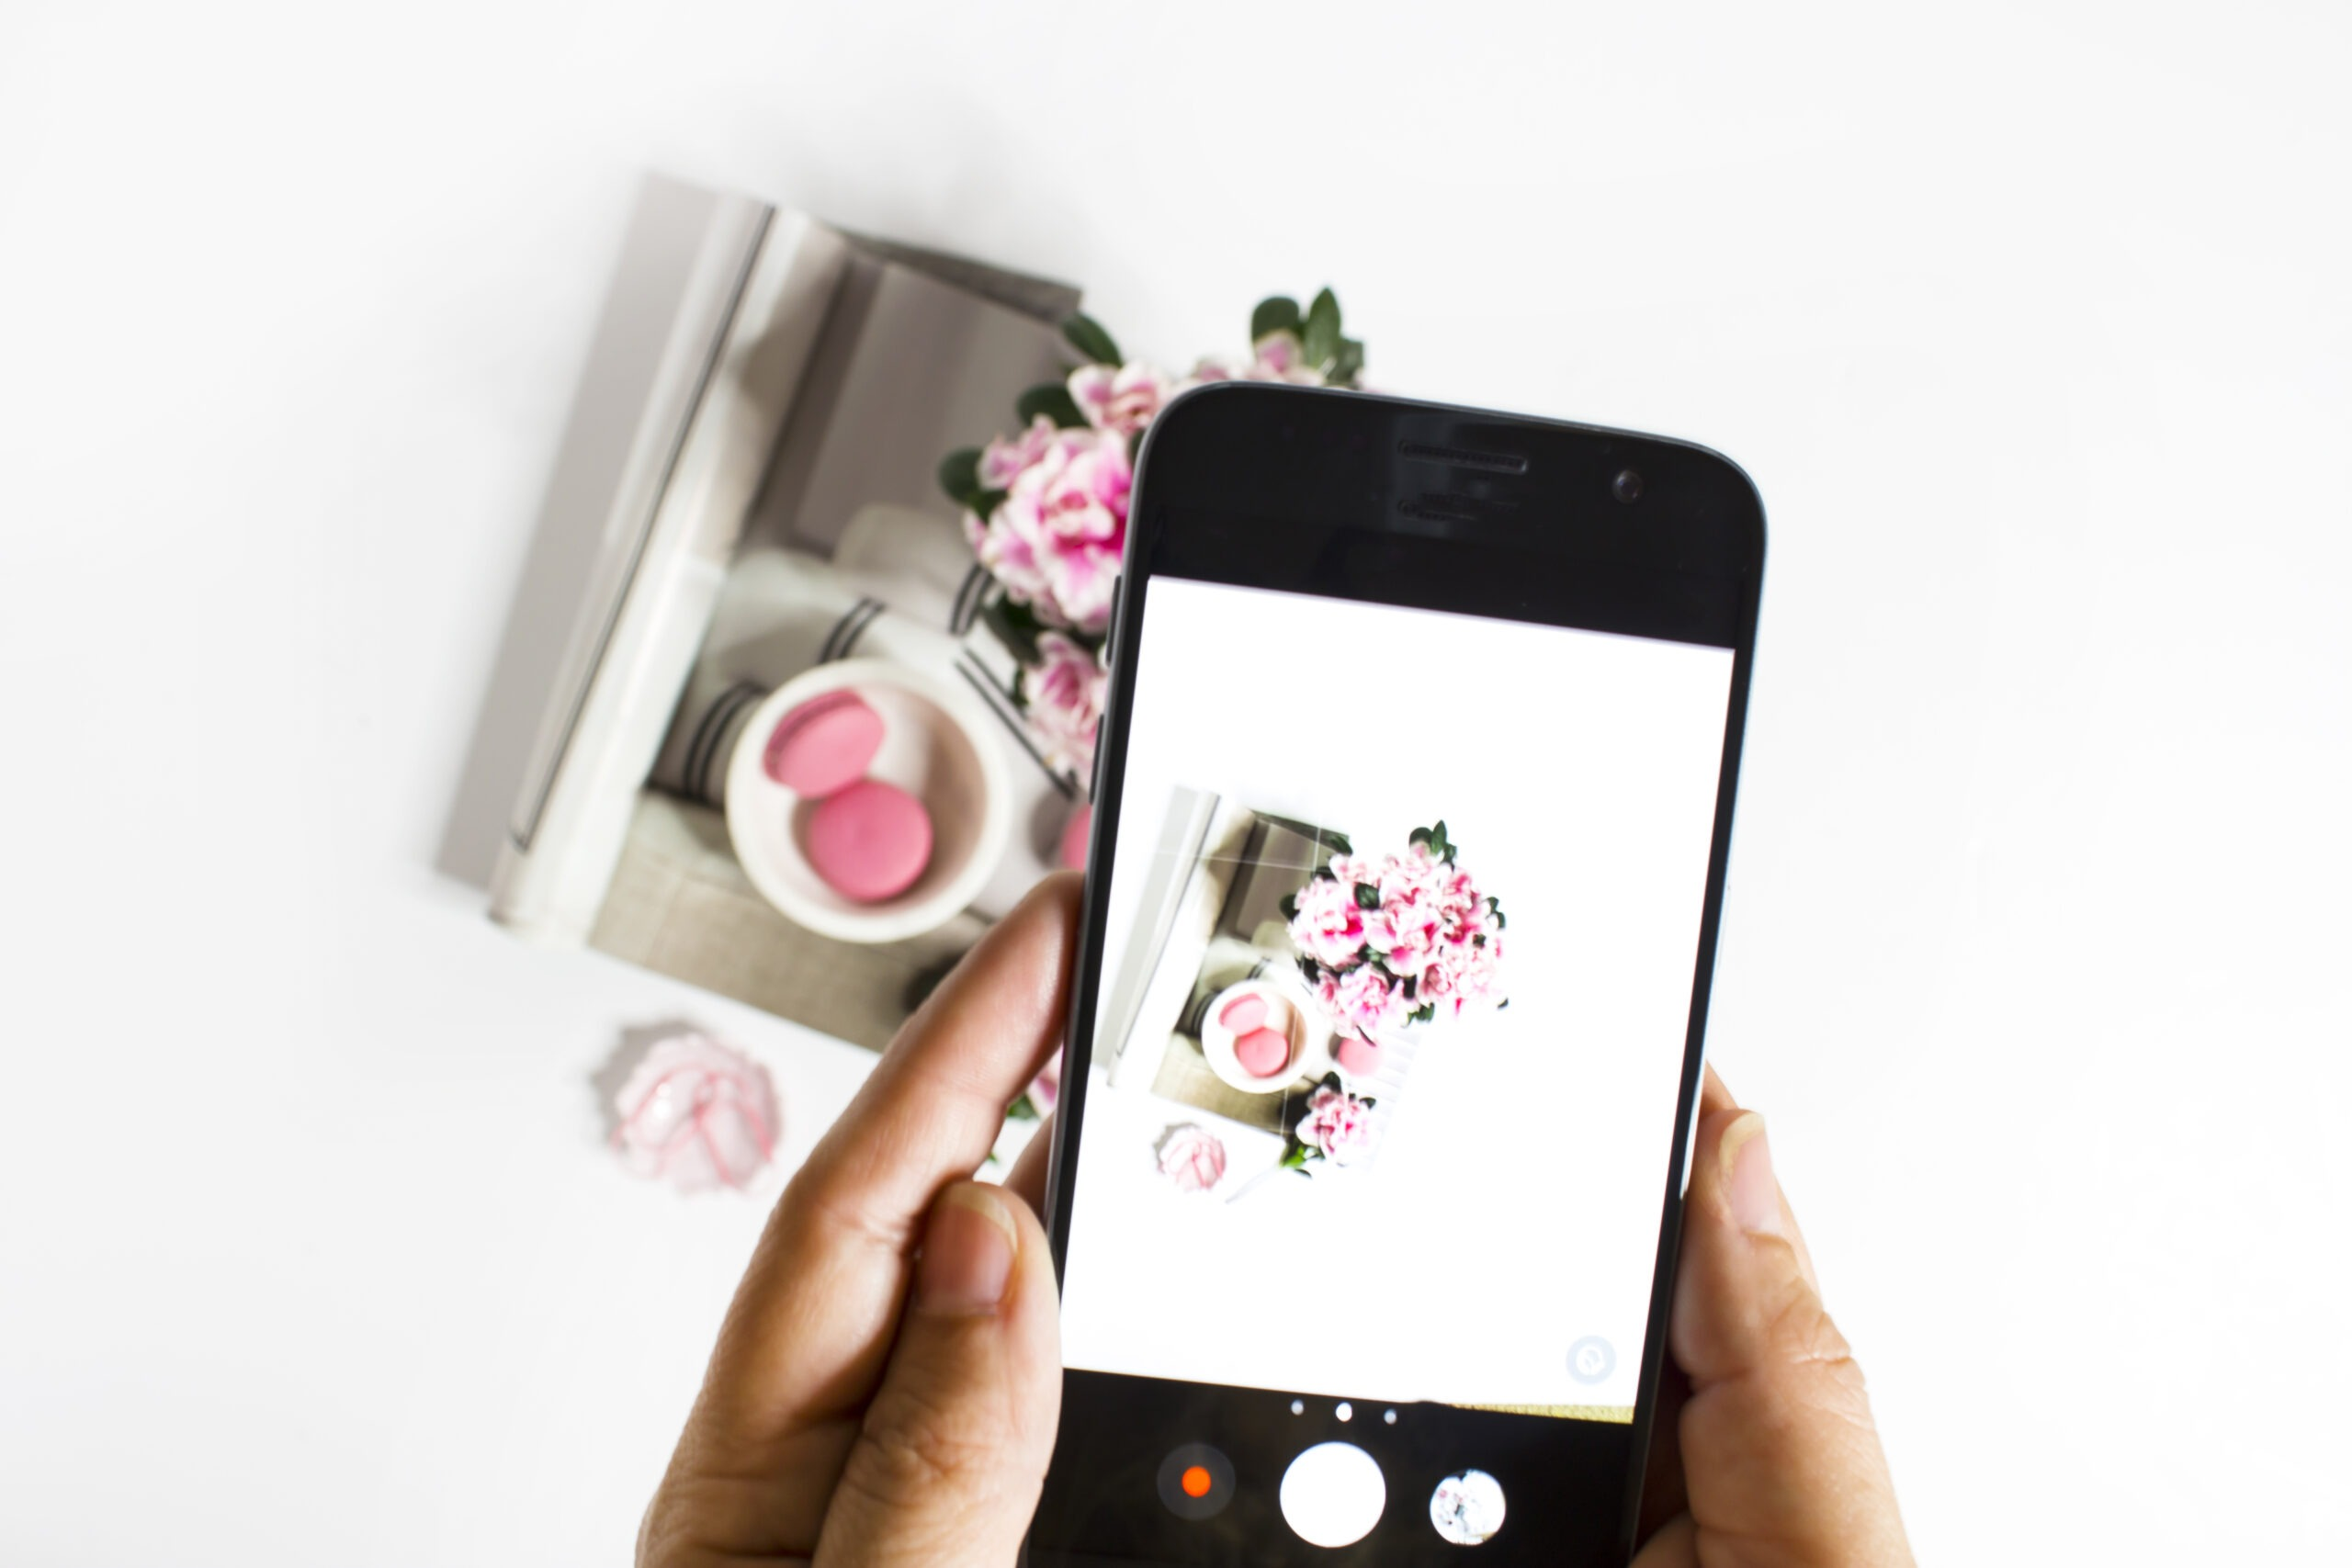 taking picture of flatlay with a cellphone camera